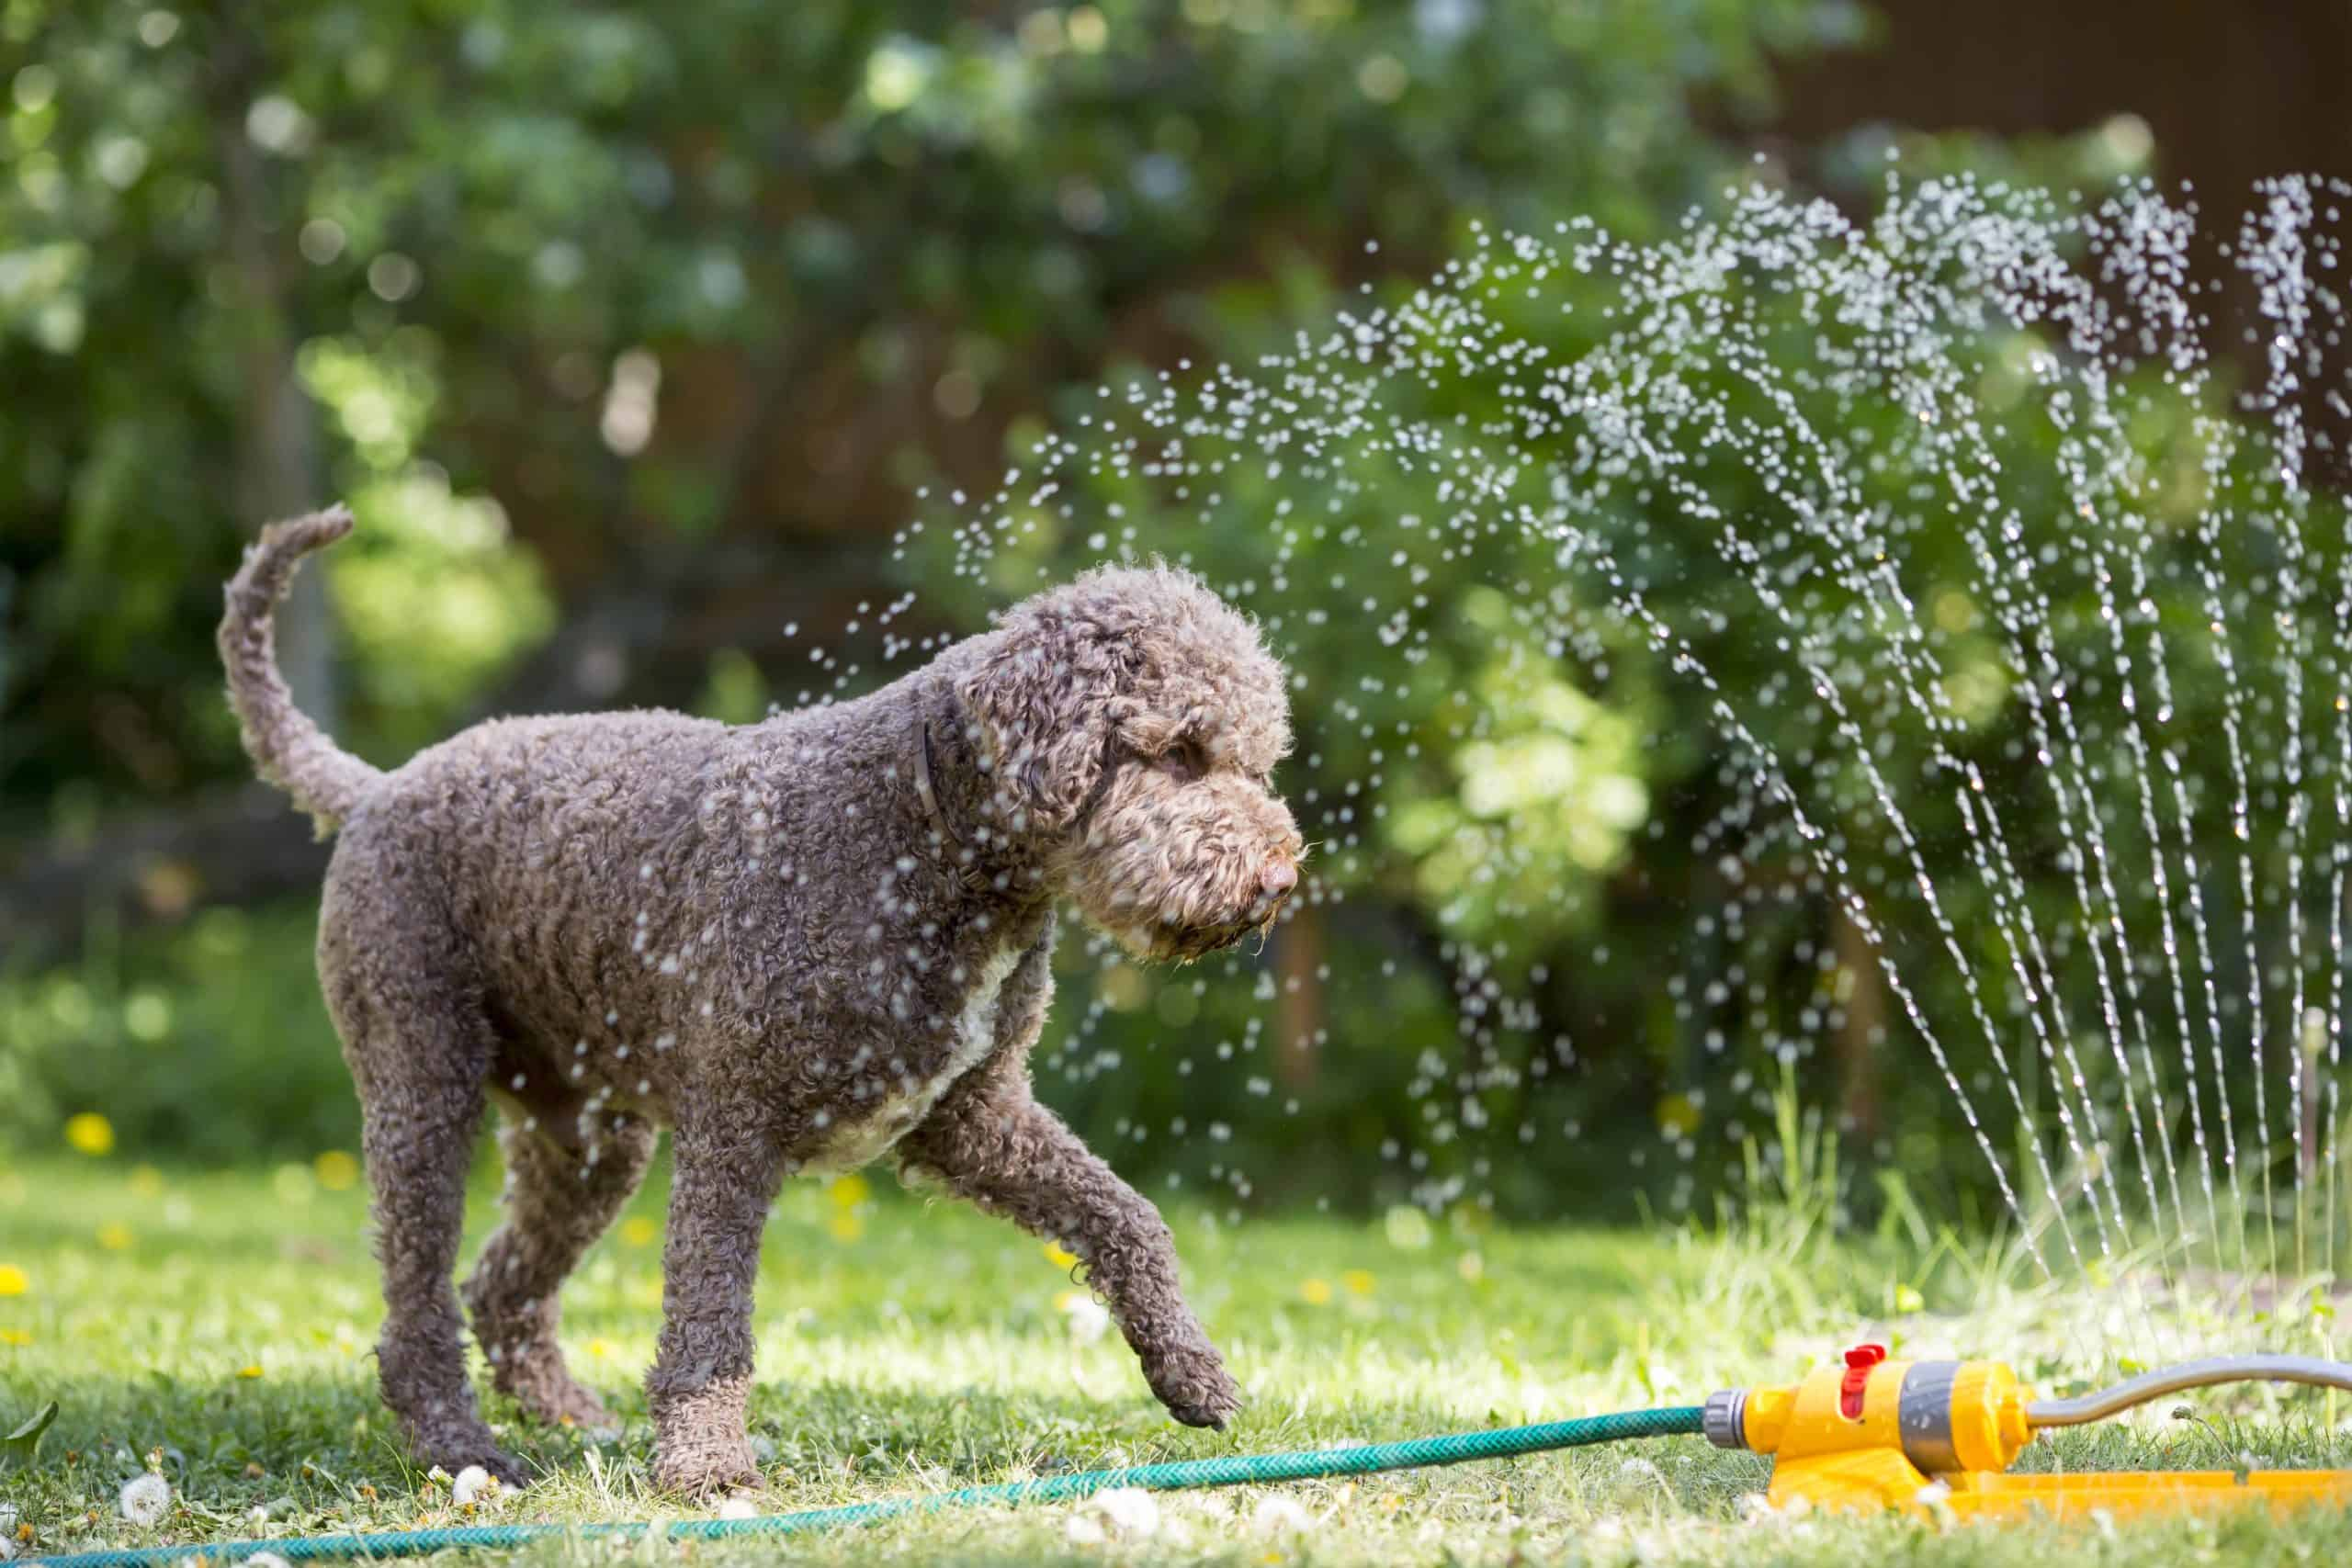 Labradoodle plays with sprinkler. Warm-weather tips: Prevent pests, help your dog lose winter weight, choose the right dog park, socialize your dog.